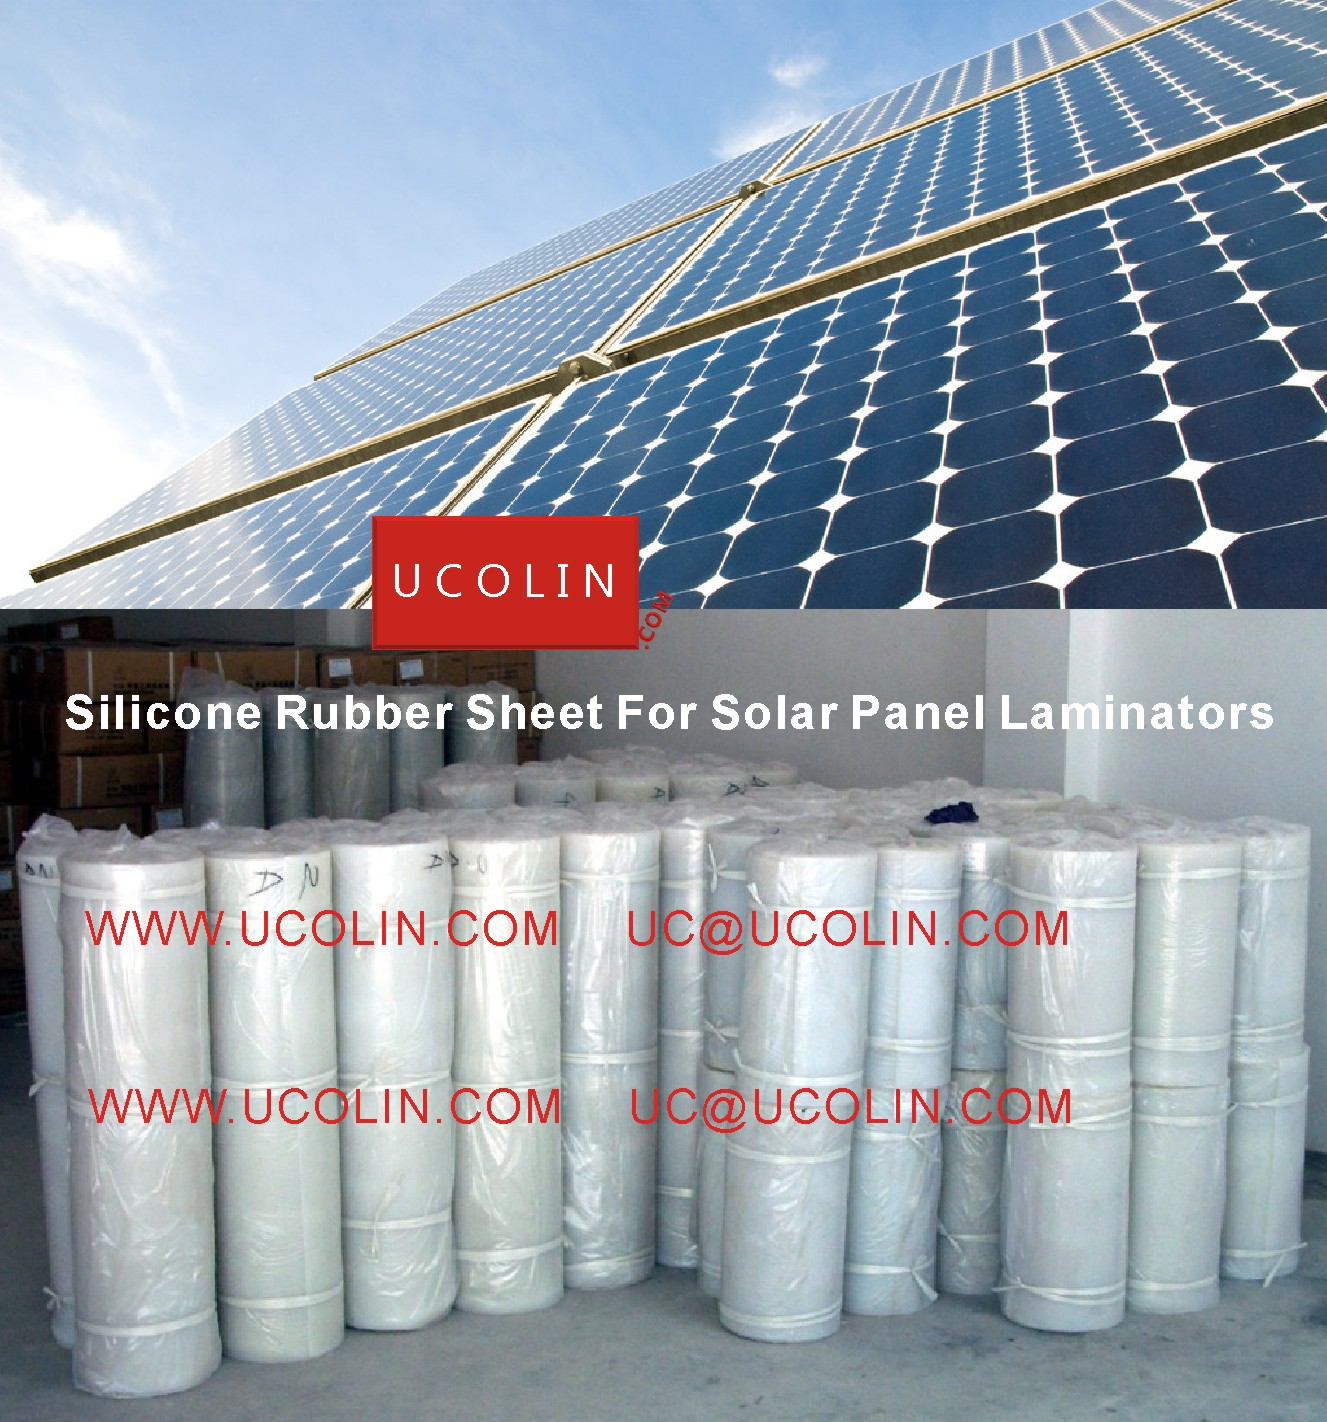 004 Silicon Rubber Sheet For Solar Panel Laminators